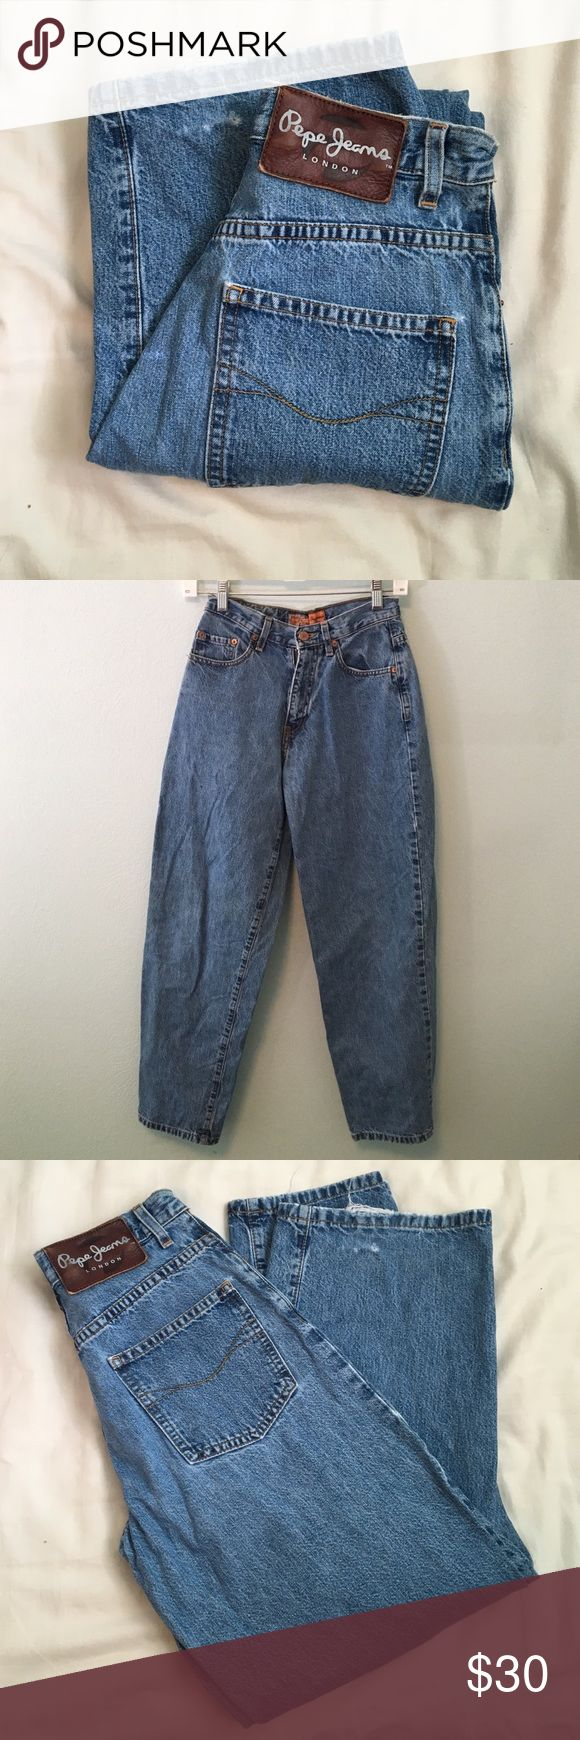 """High waisted vintage crop leg mom jeans Vintage high waisted crop leg mom jeans size 24. Tag says 25 but waist measures 12"""" across. Inseam 28"""". Rise 10"""". Leg width 9"""" across. Hips 18"""". Bottoms are a little distressed (see pictures.) """"Billie Jean"""" style Pepe Jeans London brand from the 80s/90s. Crops at ankle. Would look cute with boots ! Pepe Jeans Jeans Ankle & Cropped"""